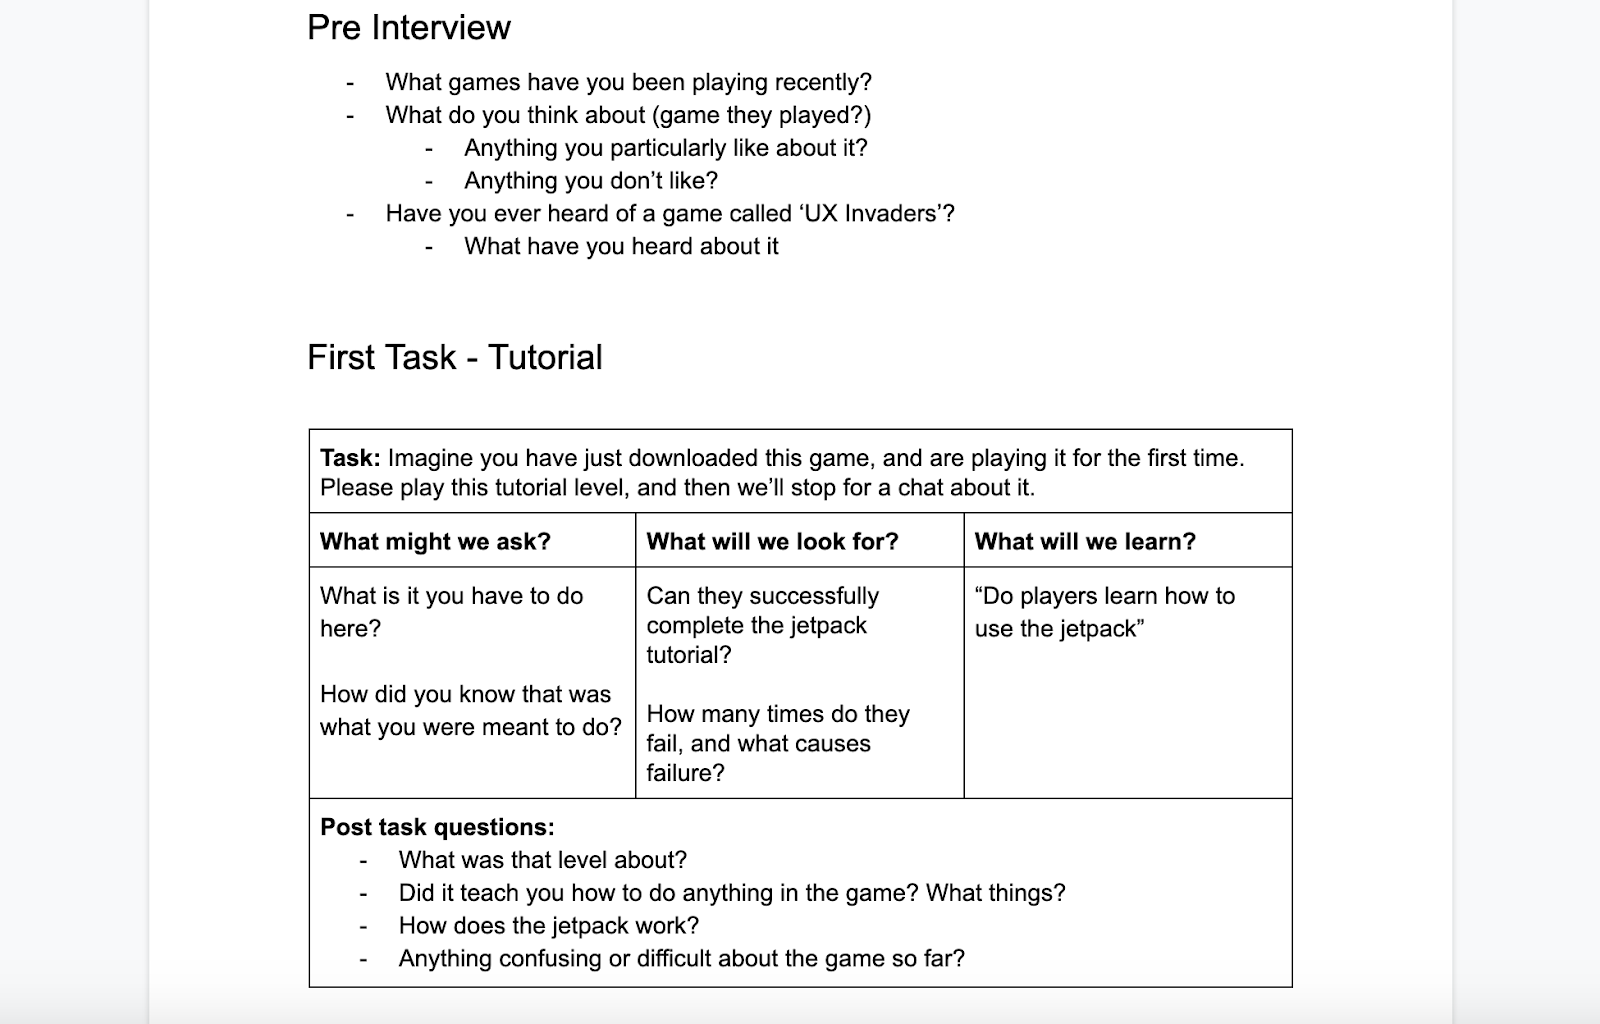 A word document sectioned as a study plan, showing the pre-interview questions and the first task set to the player